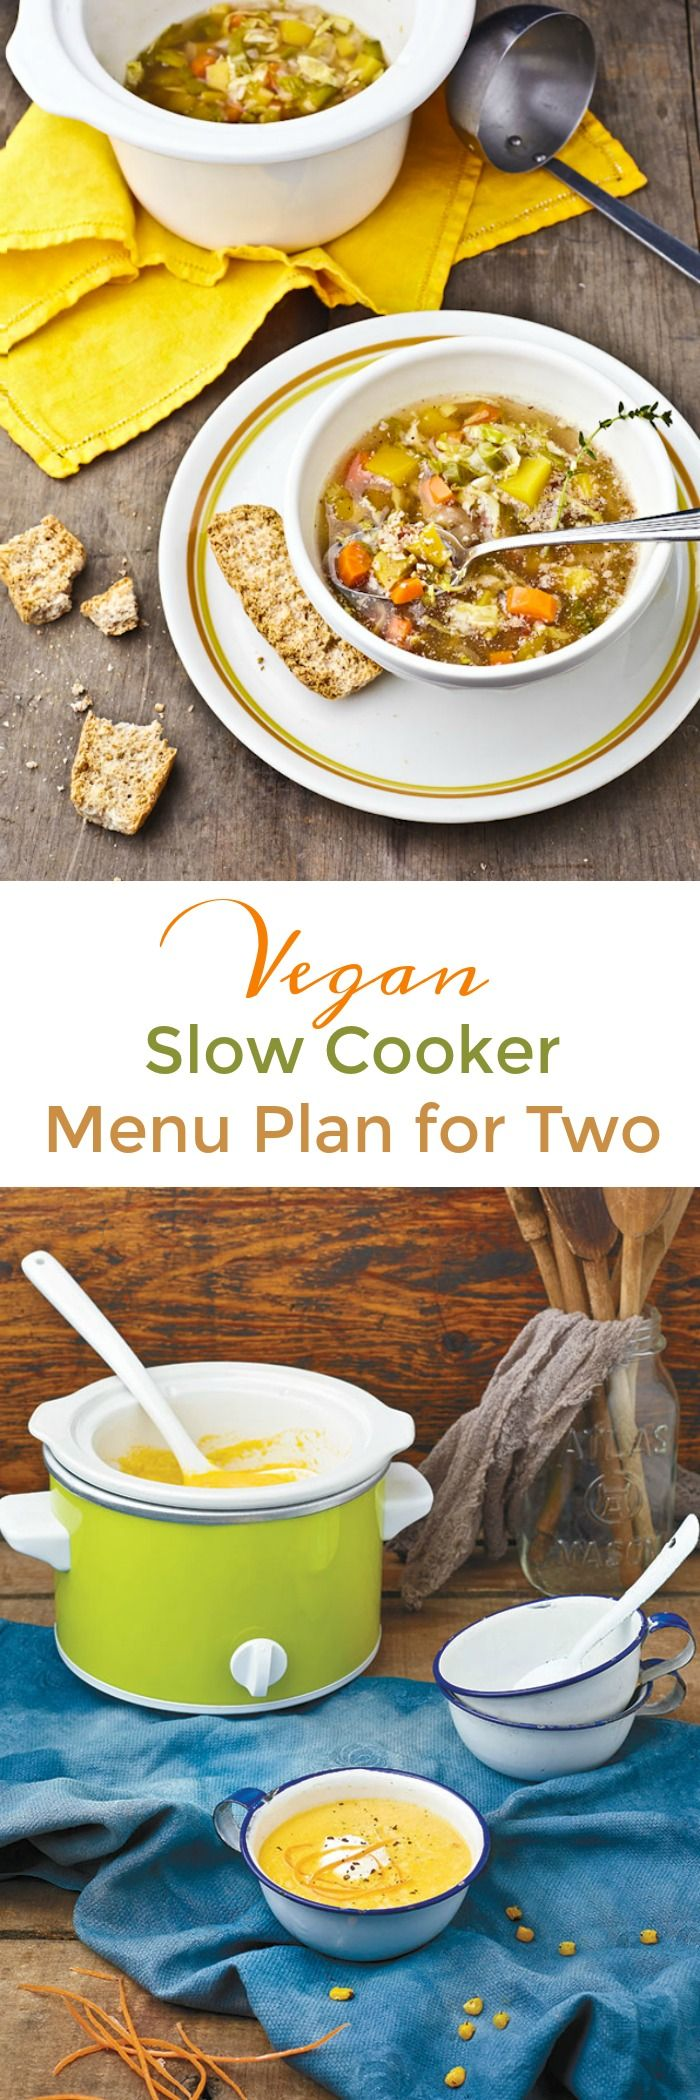 This week's menu plan at Healthy Slow Cooking uses a 1 1/2 or 2 quart slow cooker and is perfect for 1 or 2 people households. Includes 7 breakfasts, 7 main courses and a dessert!